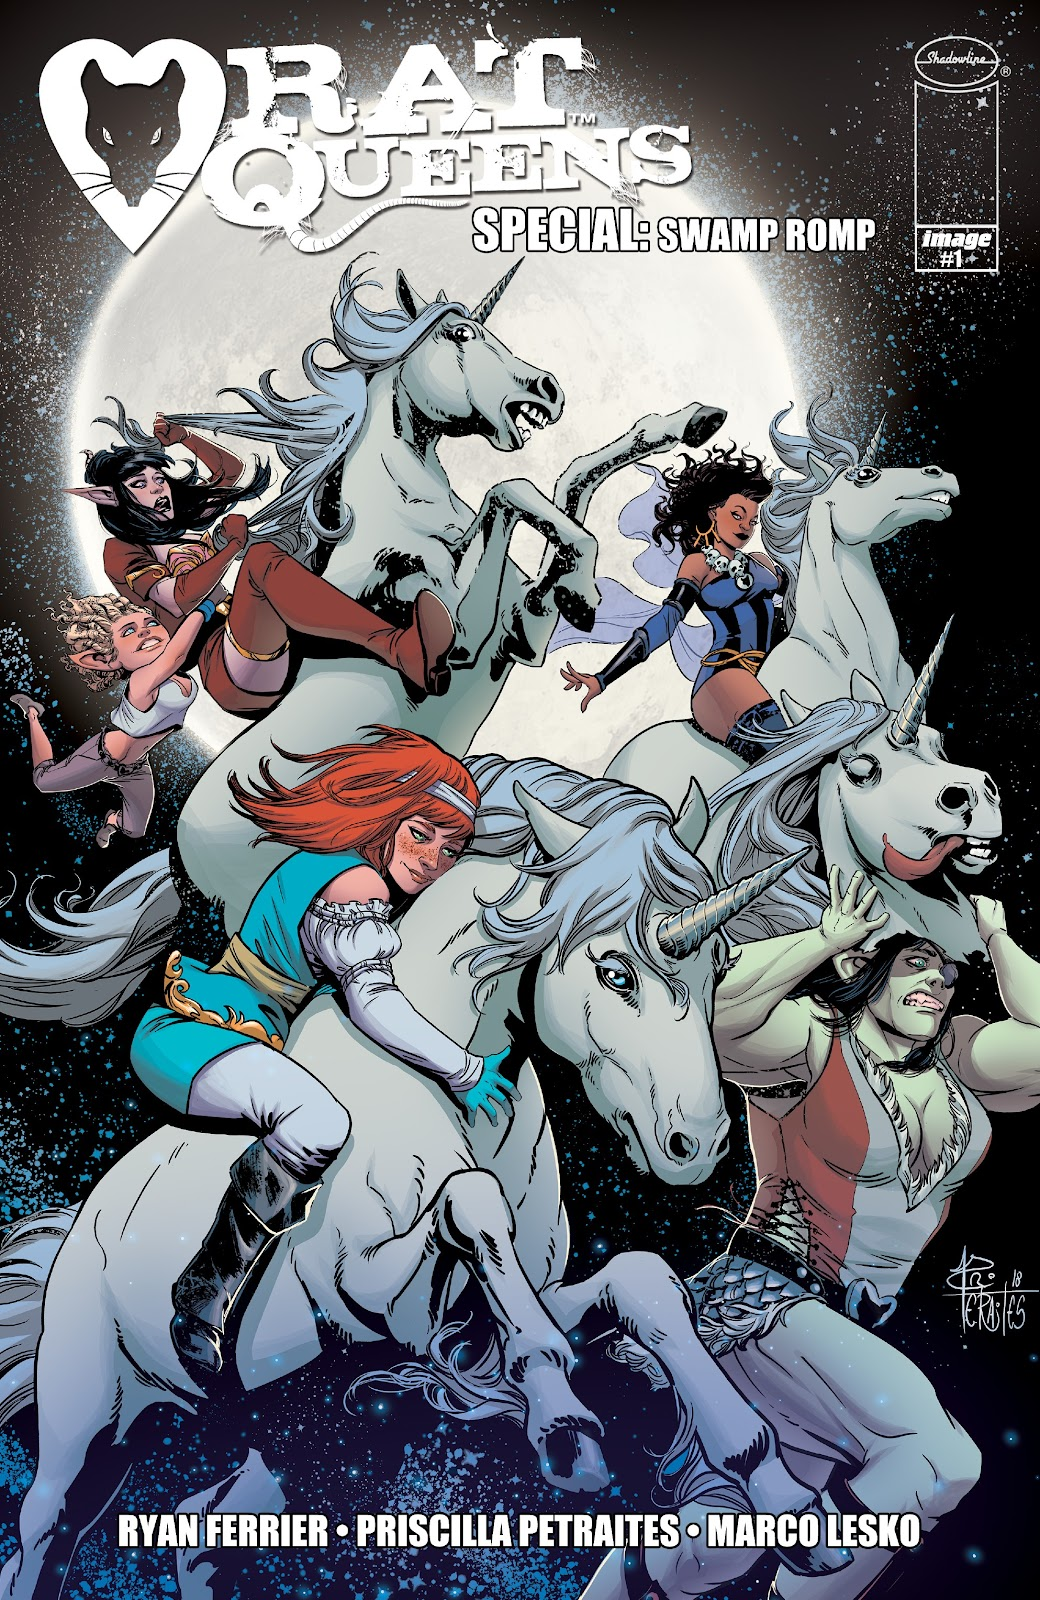 Read online Rat Queens Special: Swamp Romp comic -  Issue # Full - 1